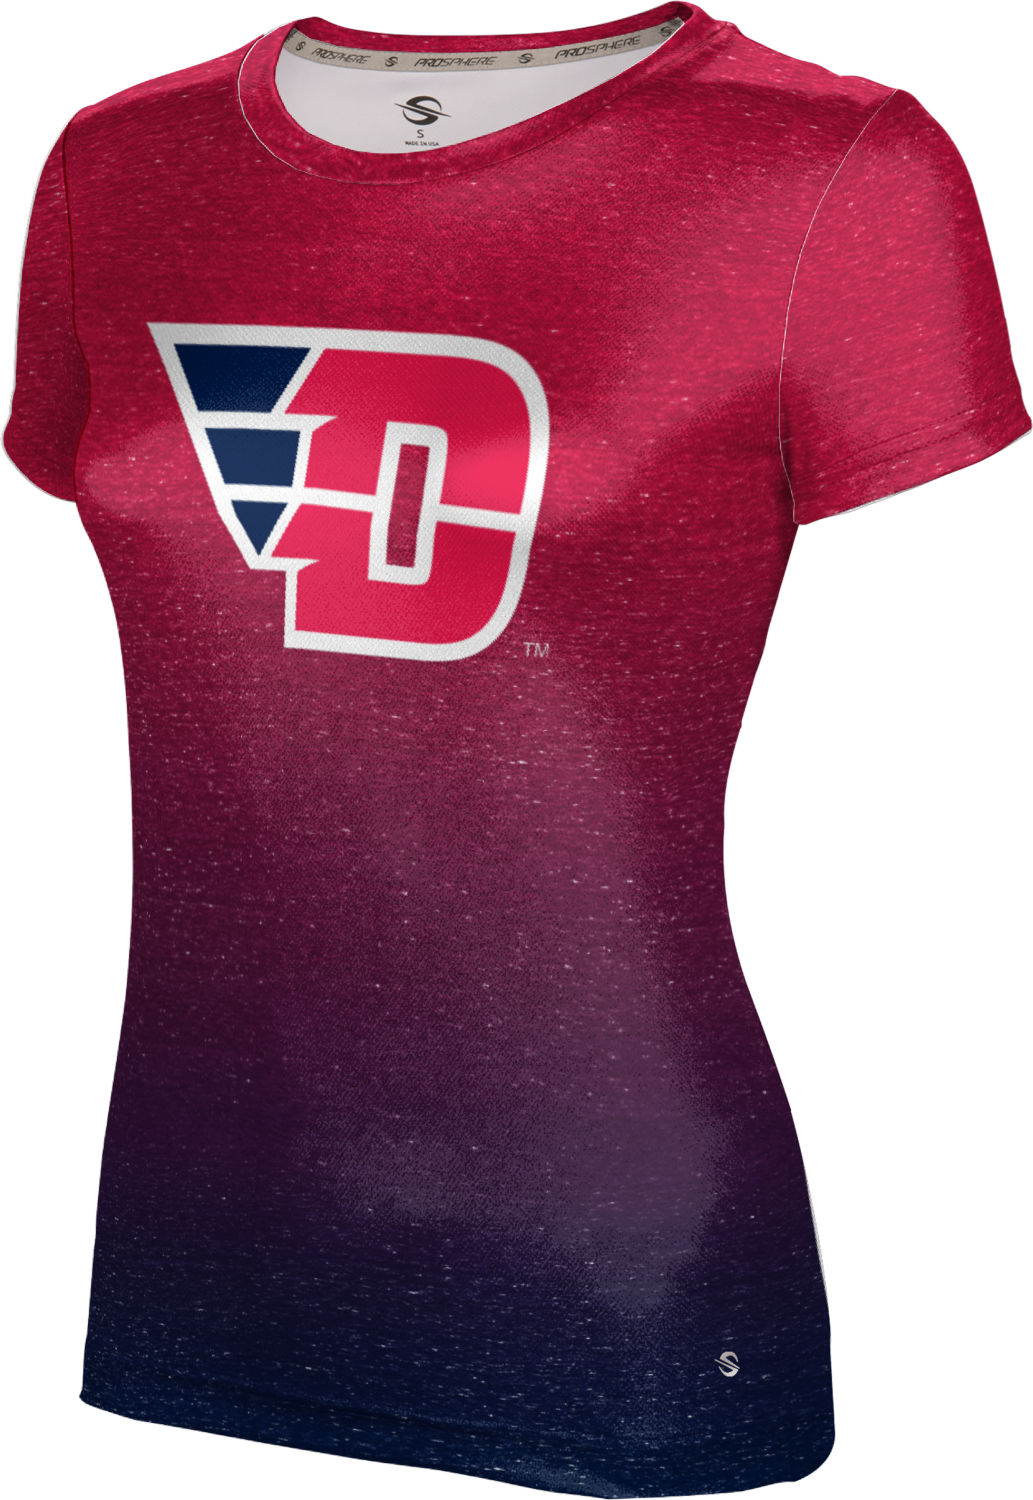 ProSphere Girls' University of Dayton Ombre Tech Tee